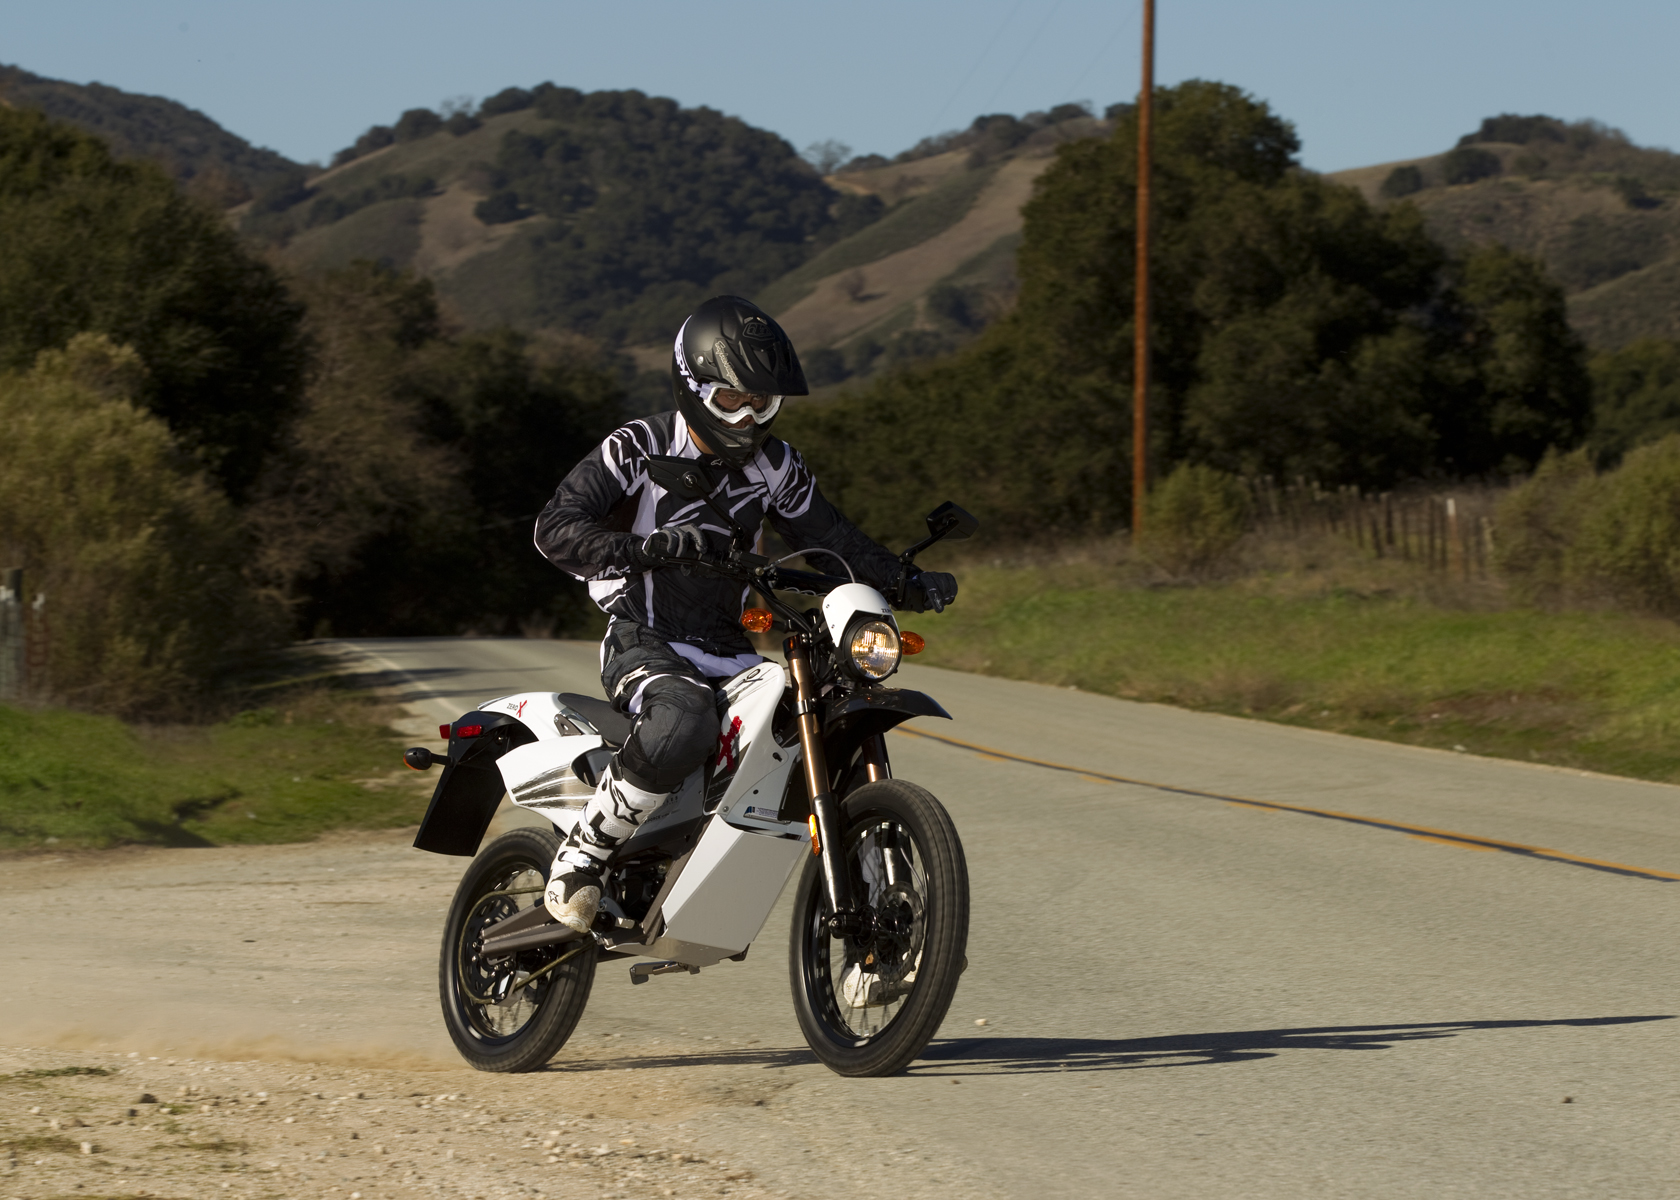 2011 Zero X Electric Motorcycle: Back to the Highway